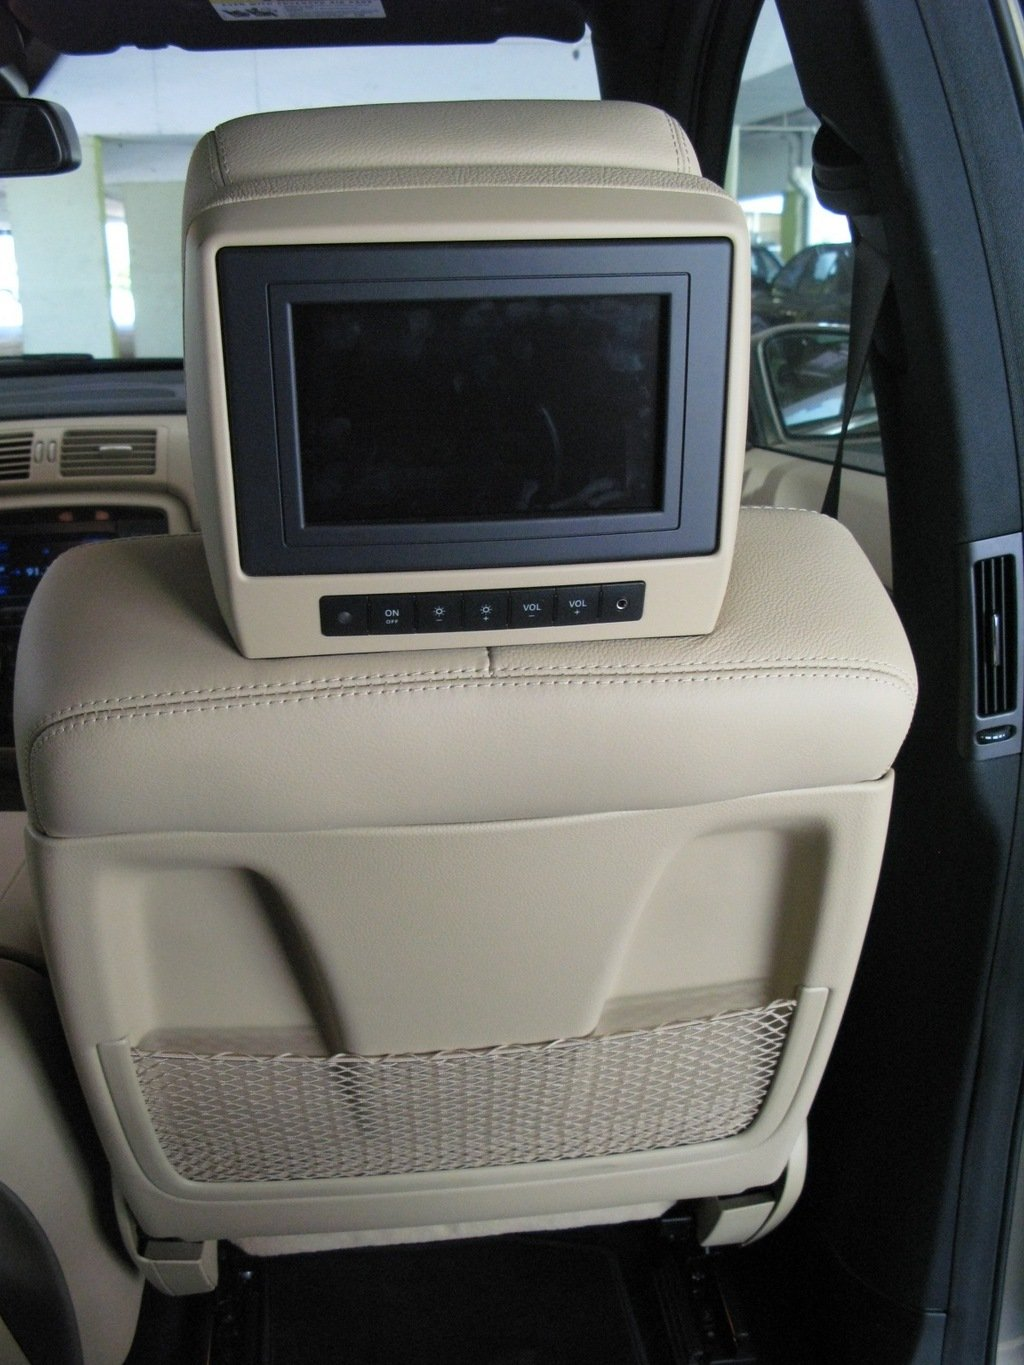 2008 mercedes r320 cdi 4 matic picture 248560 car review top speed. Black Bedroom Furniture Sets. Home Design Ideas